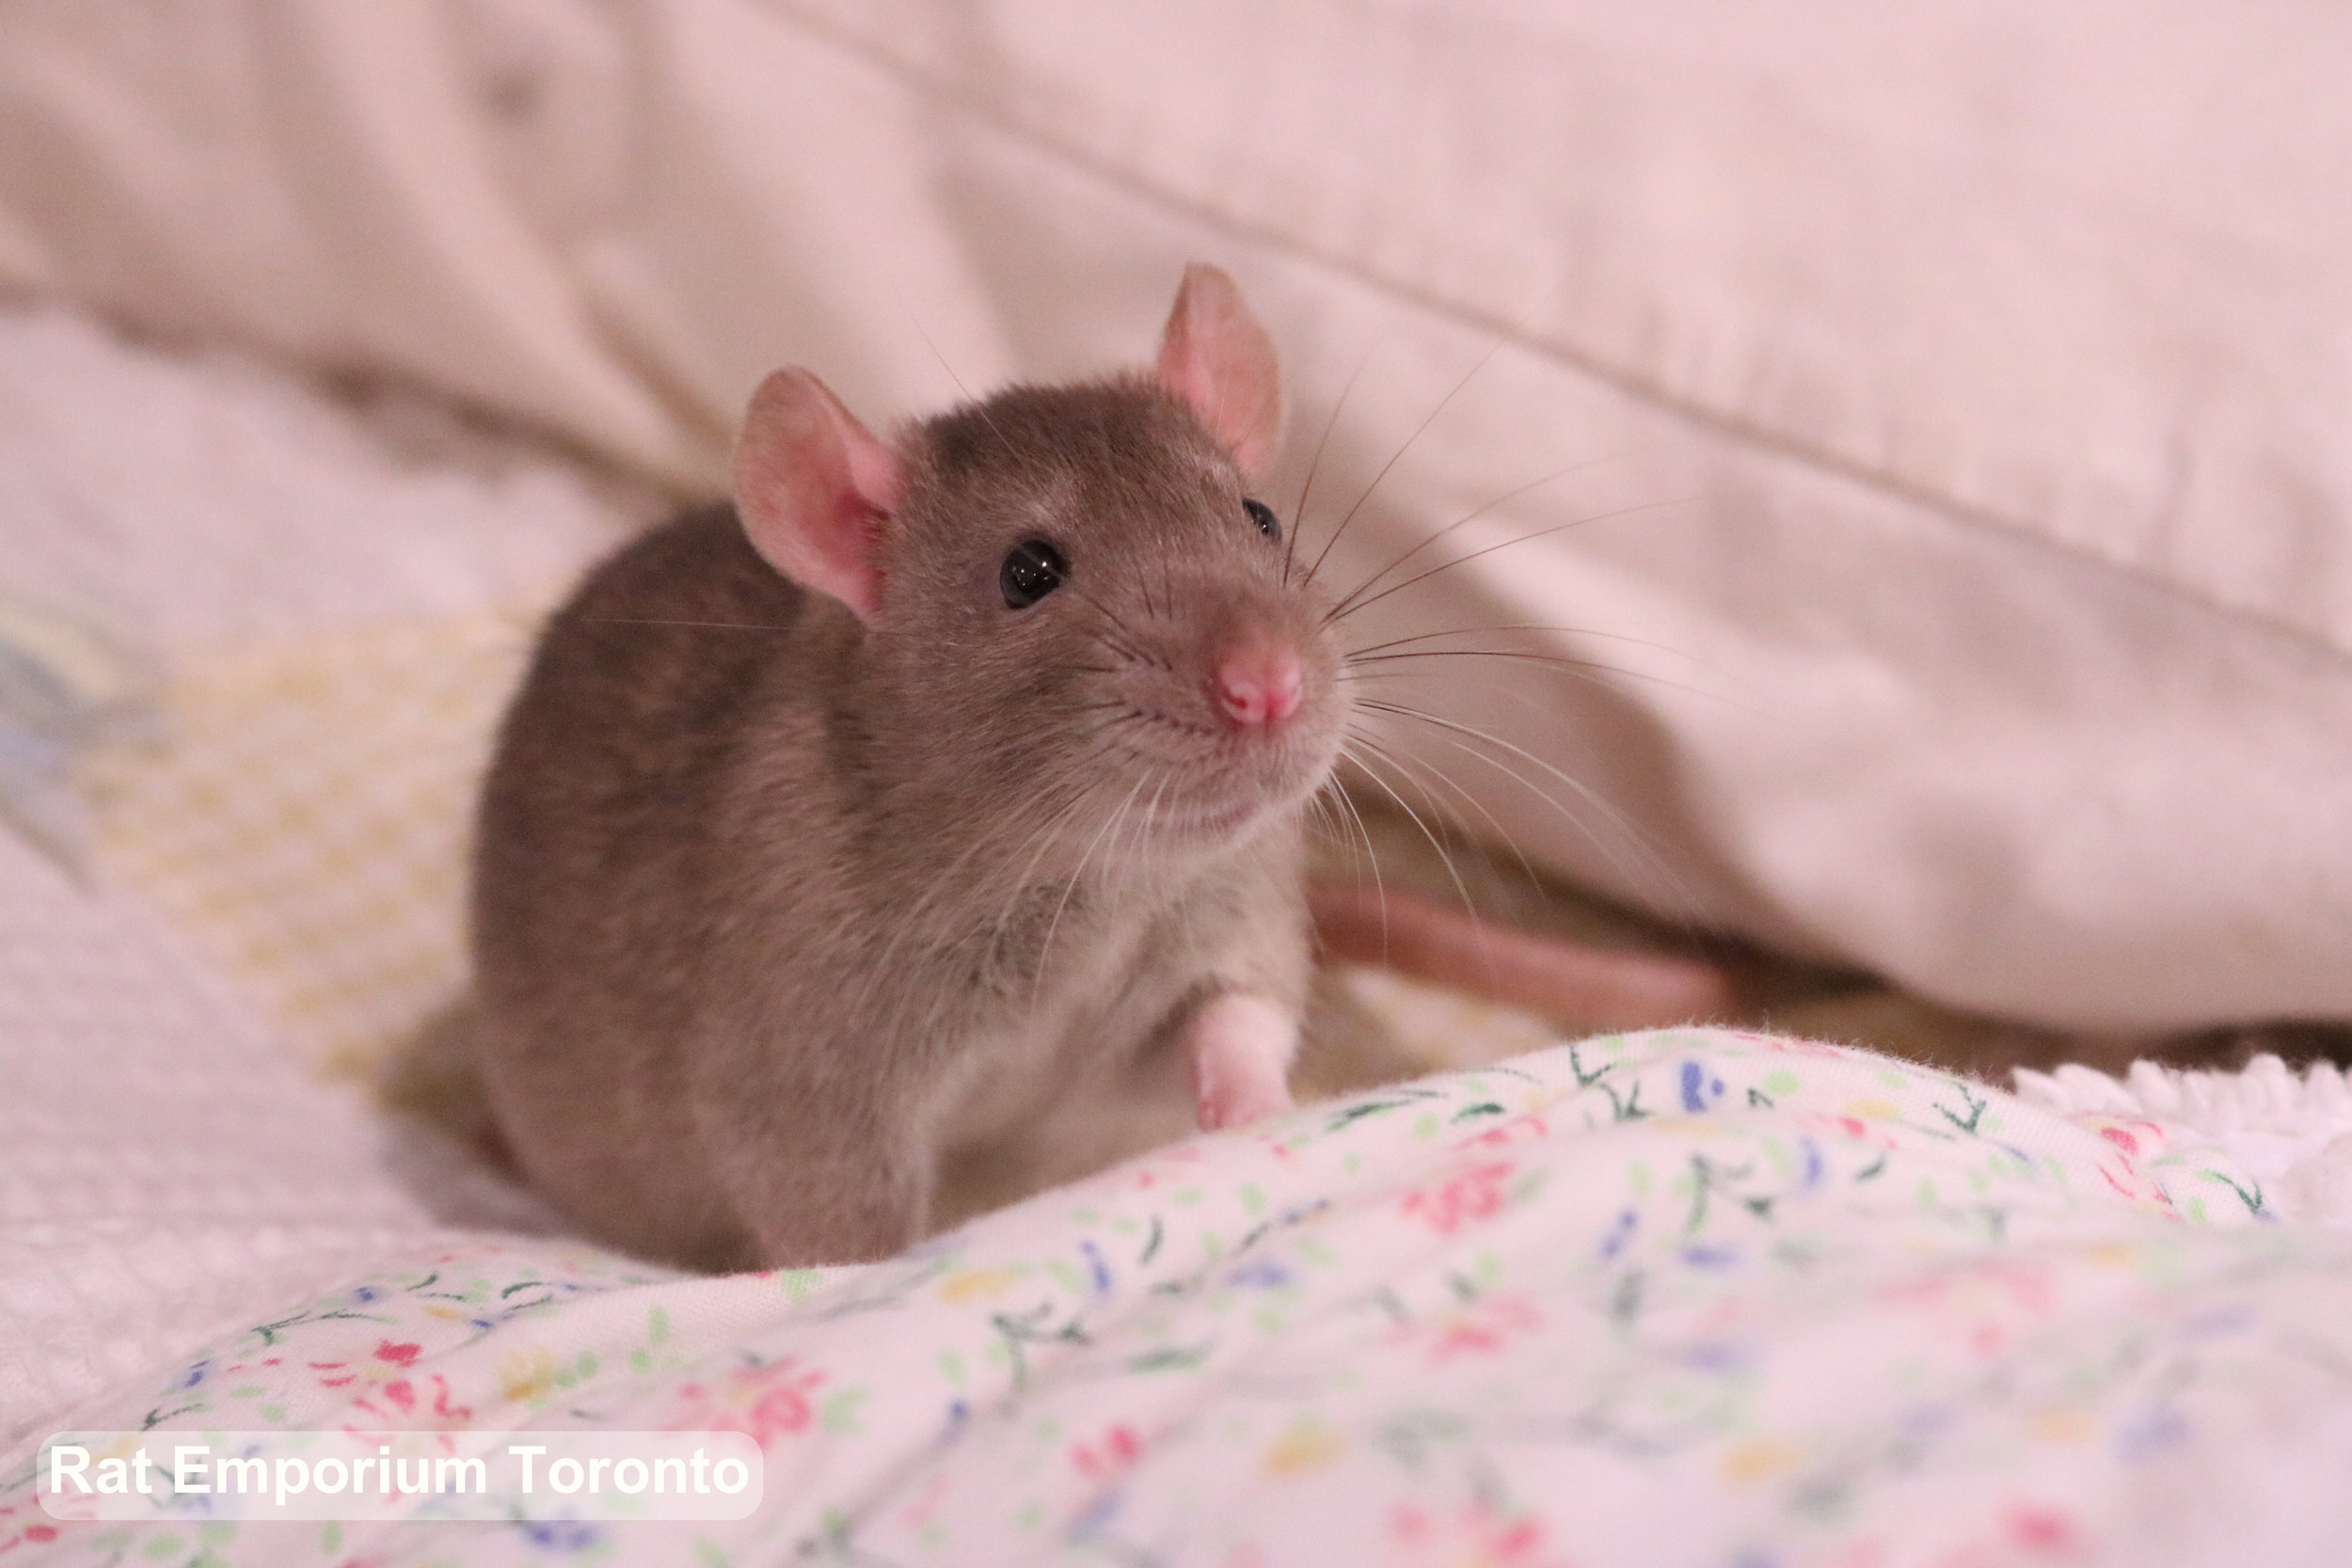 My standard eared rat Crisp! His ears are smaller and placed higher on his head.